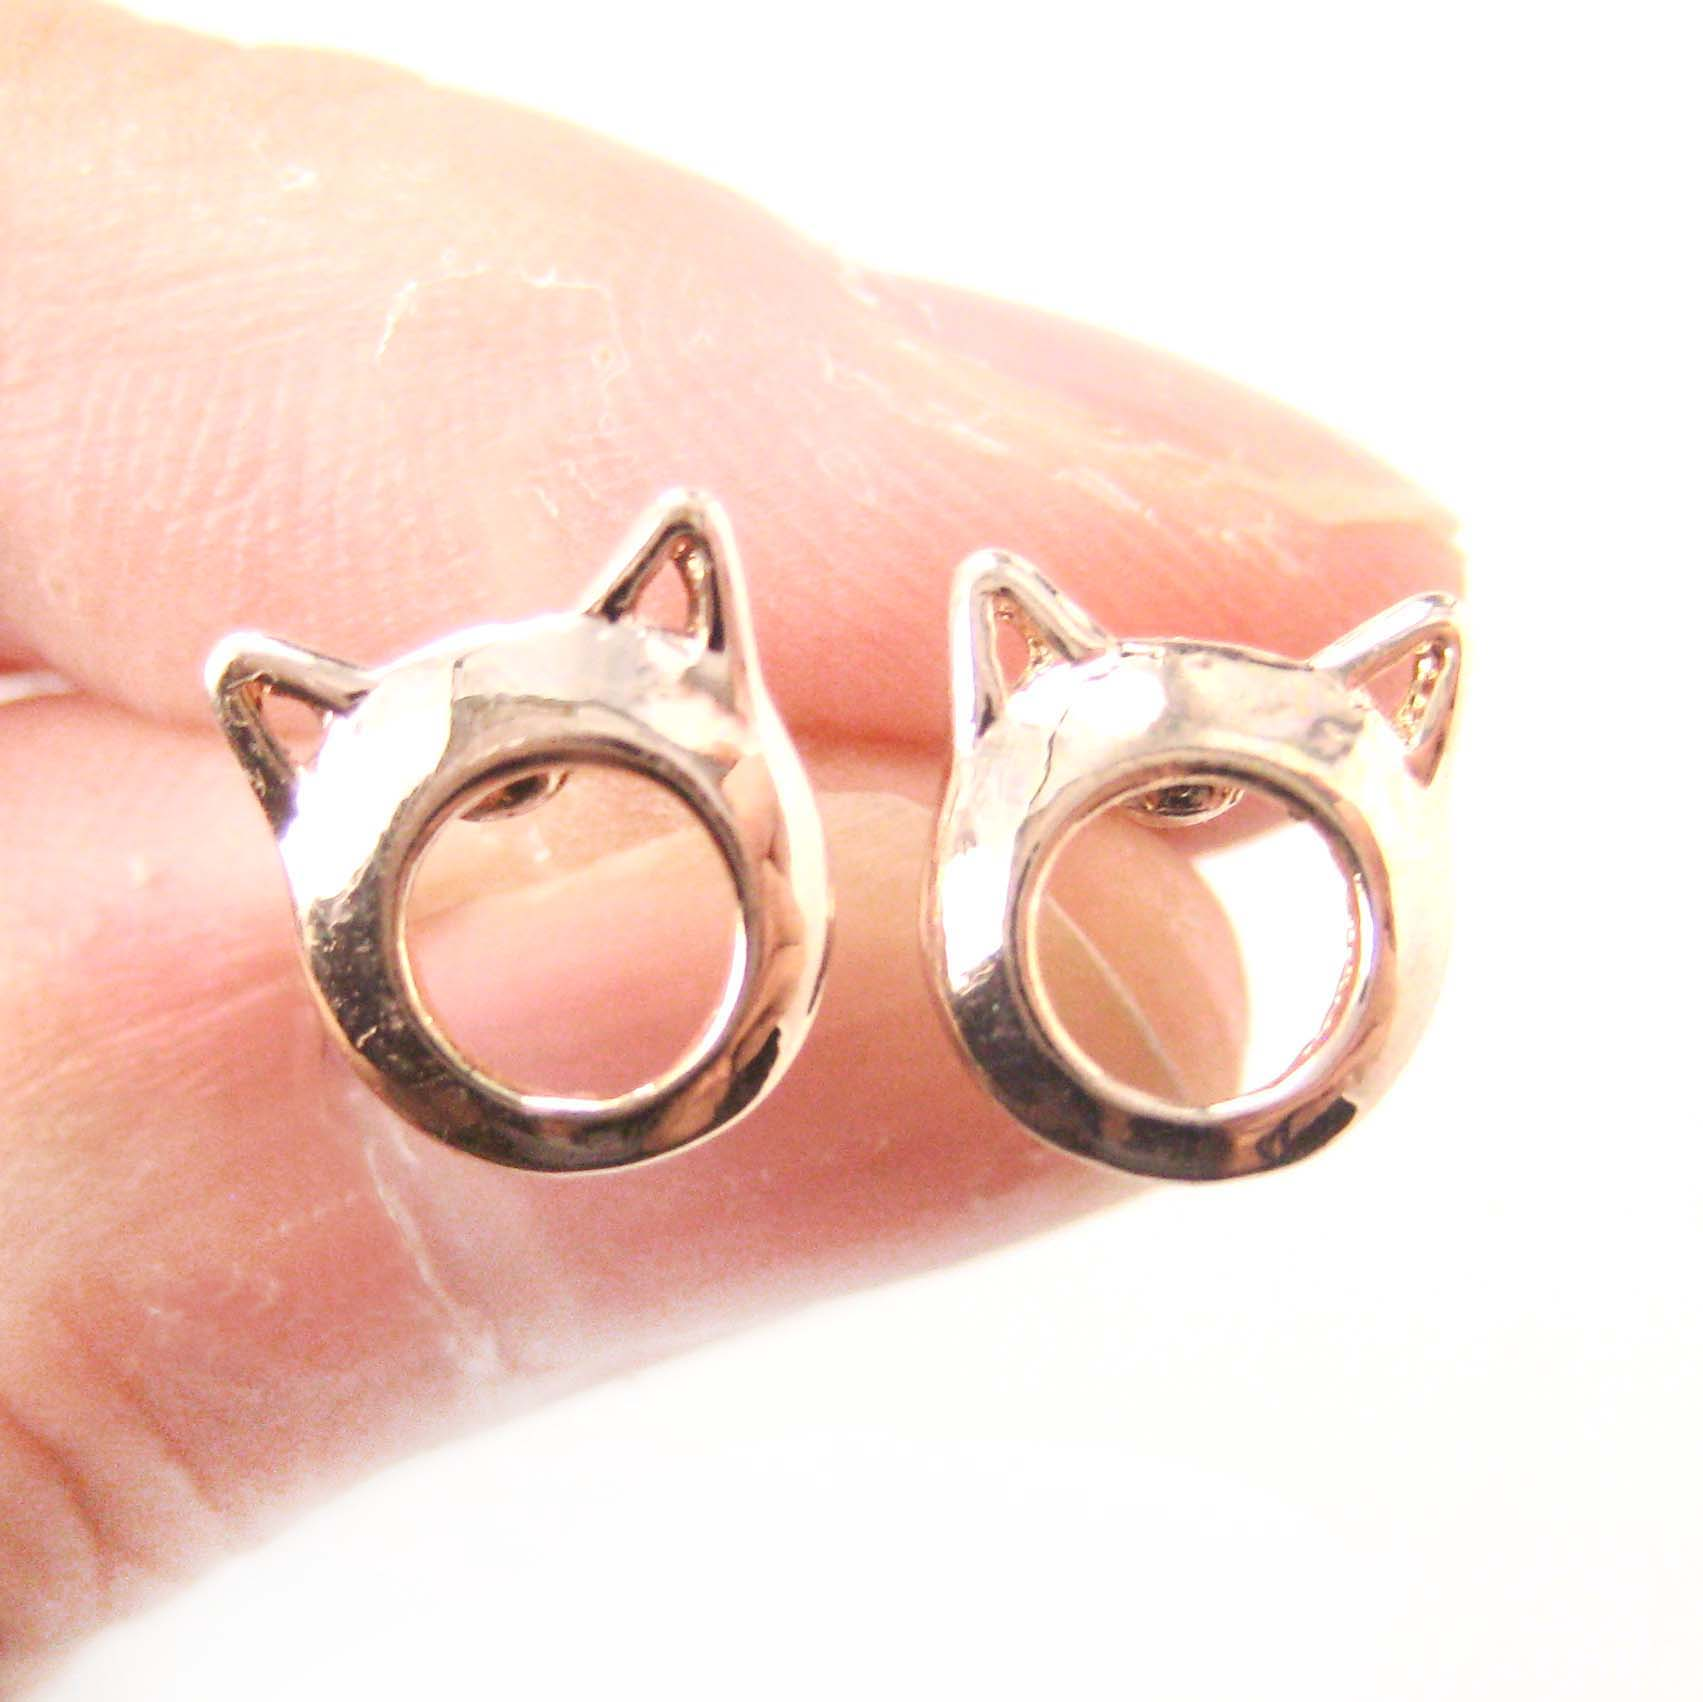 kitty-cat-animal-ears-cut-out-stud-earrings-in-rose-gold